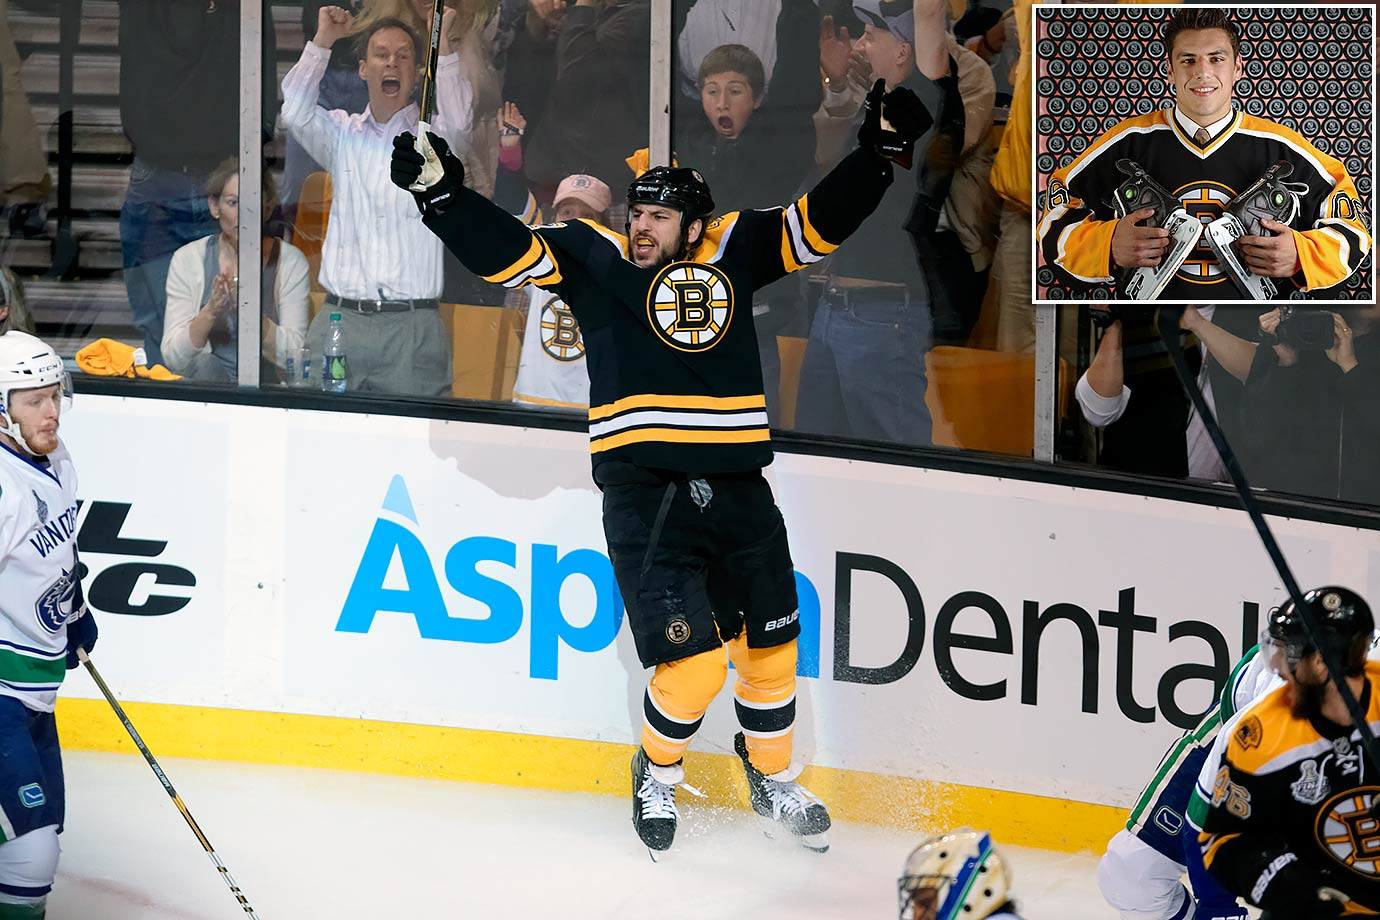 If anyone was born to play for Boston, it was Lucic. Drafted after the Bruins sent Sergei Samsonov to Edmonton for Marty Reasoner, Yan Stastny and a second rounder (No. 50) on March 9, 2006, he was an awkward skater and there were questions about his offensive potential. But Lucic had the heart of a lion and desire to make an impact every time he stepped on the ice. That drive made him an enduring fan favorite.